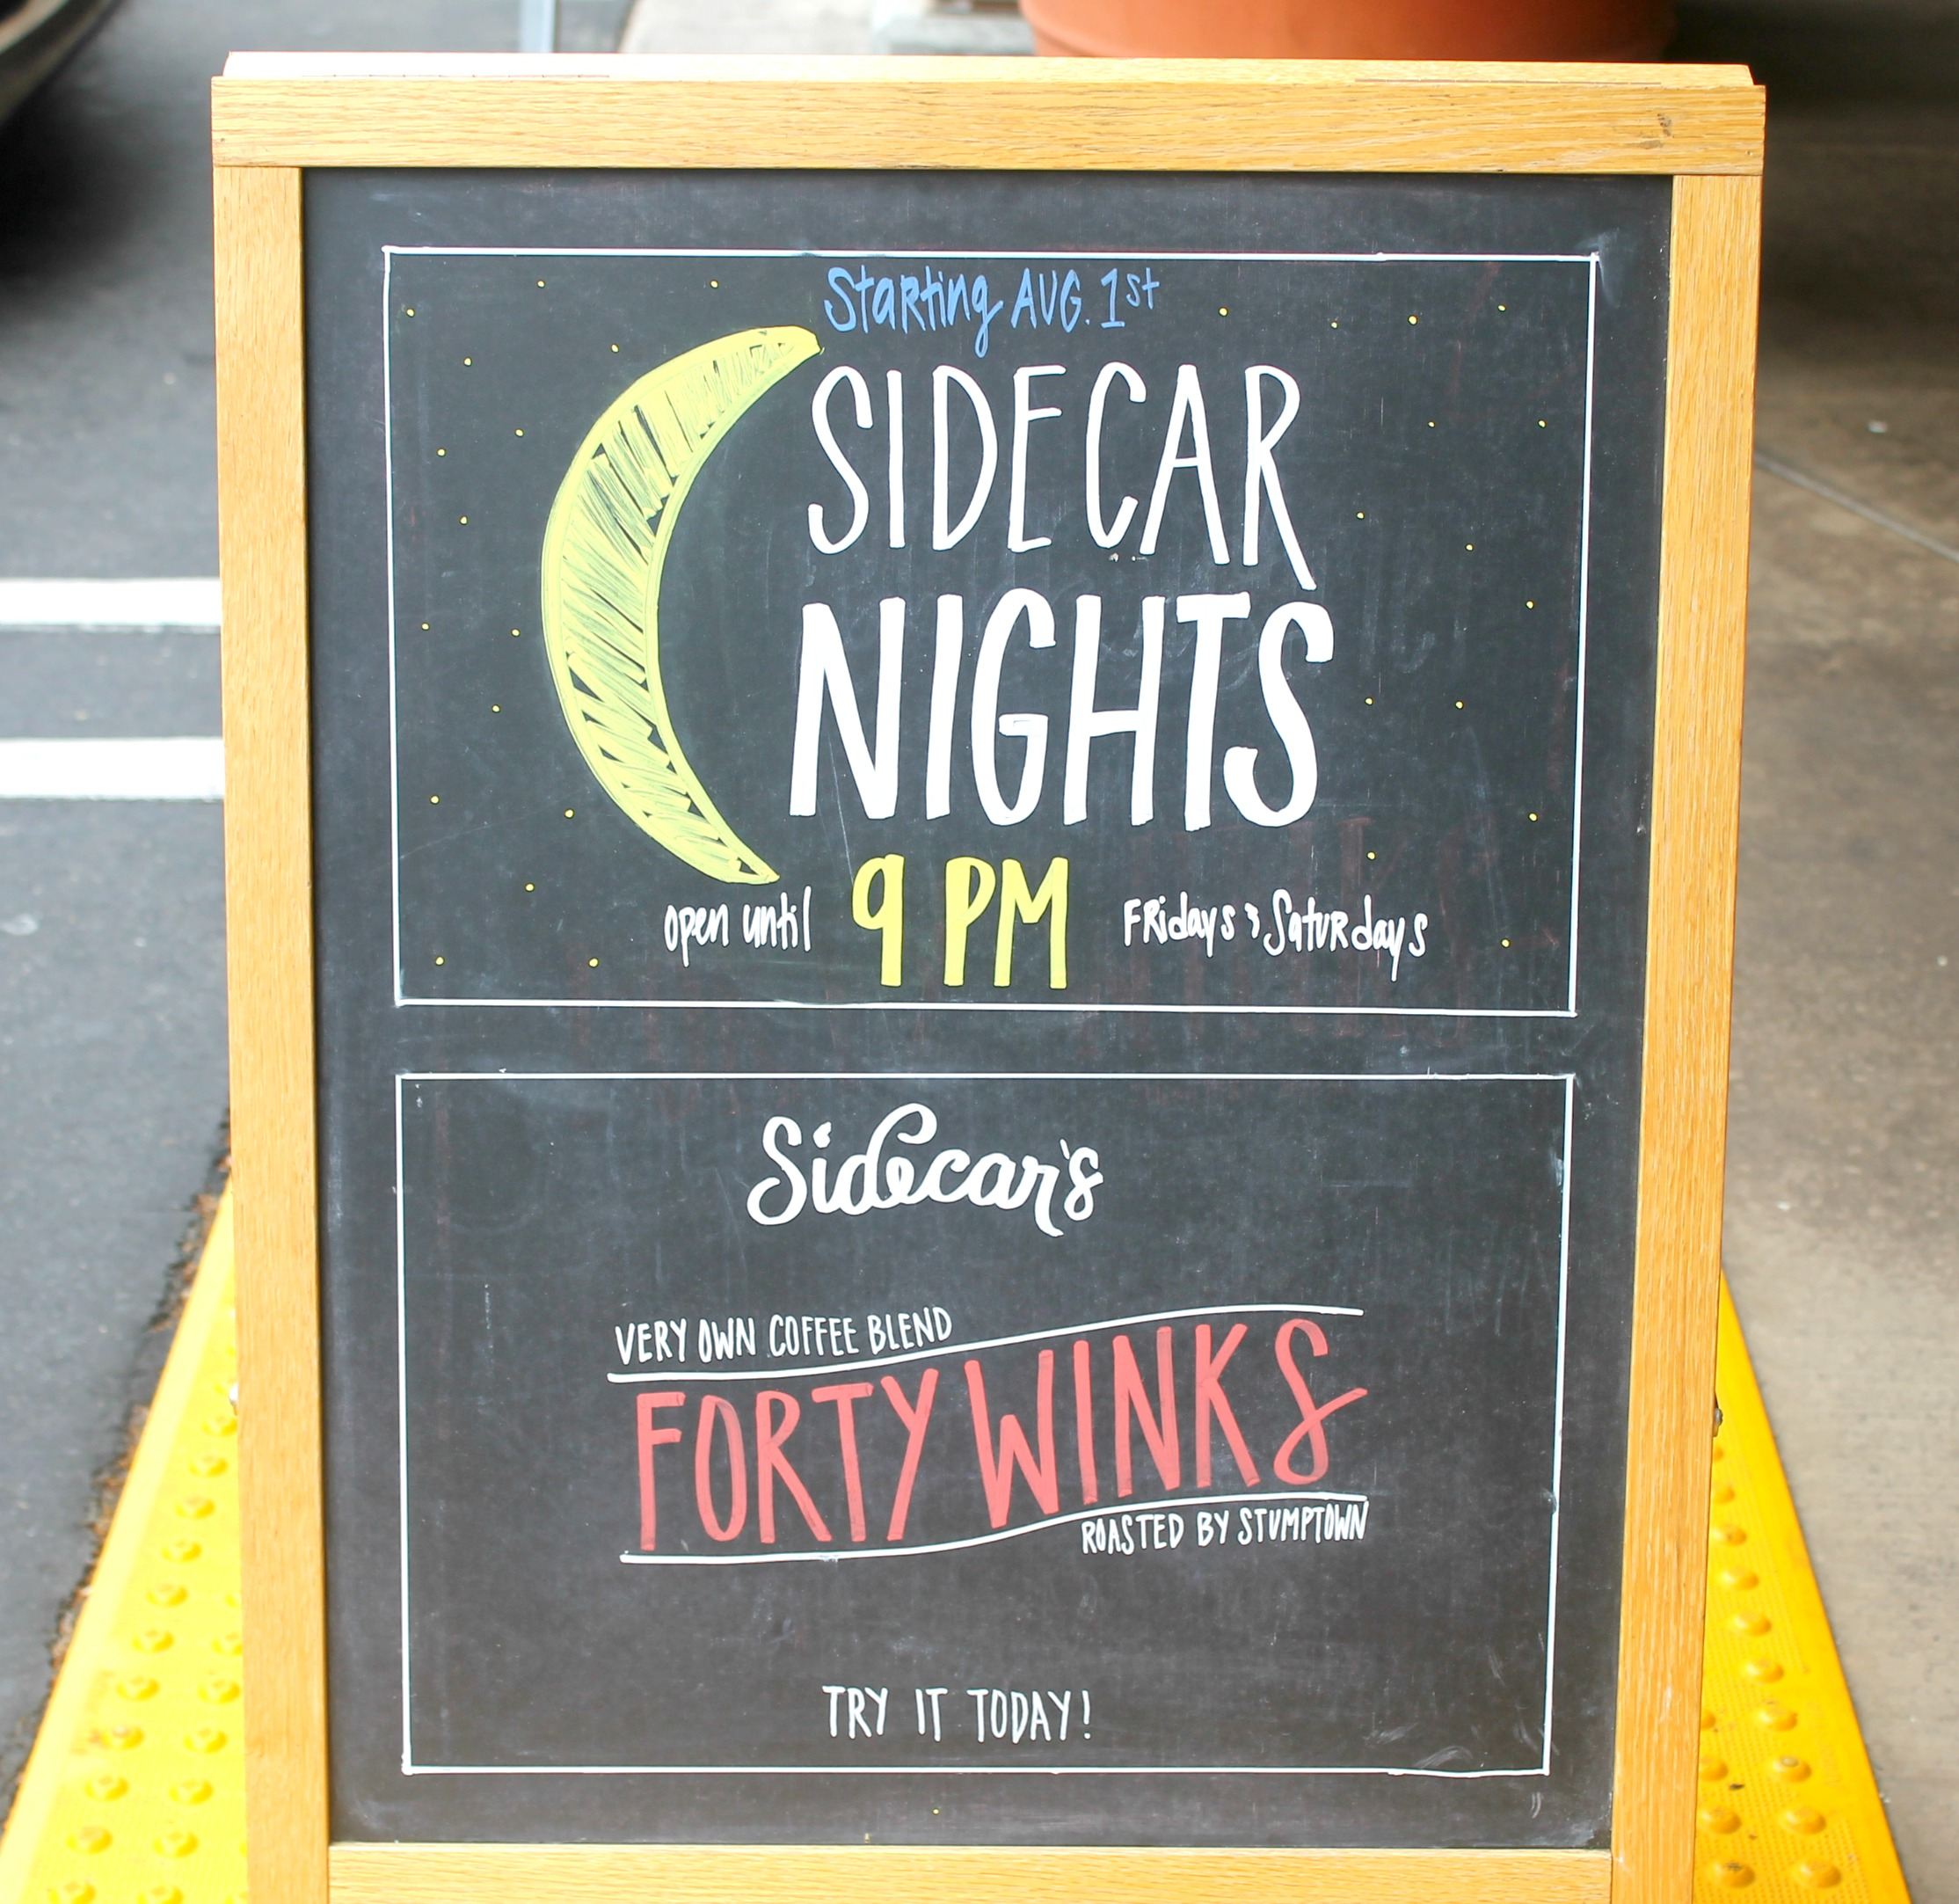 Summer at Sidecar Doughnuts Summer nights